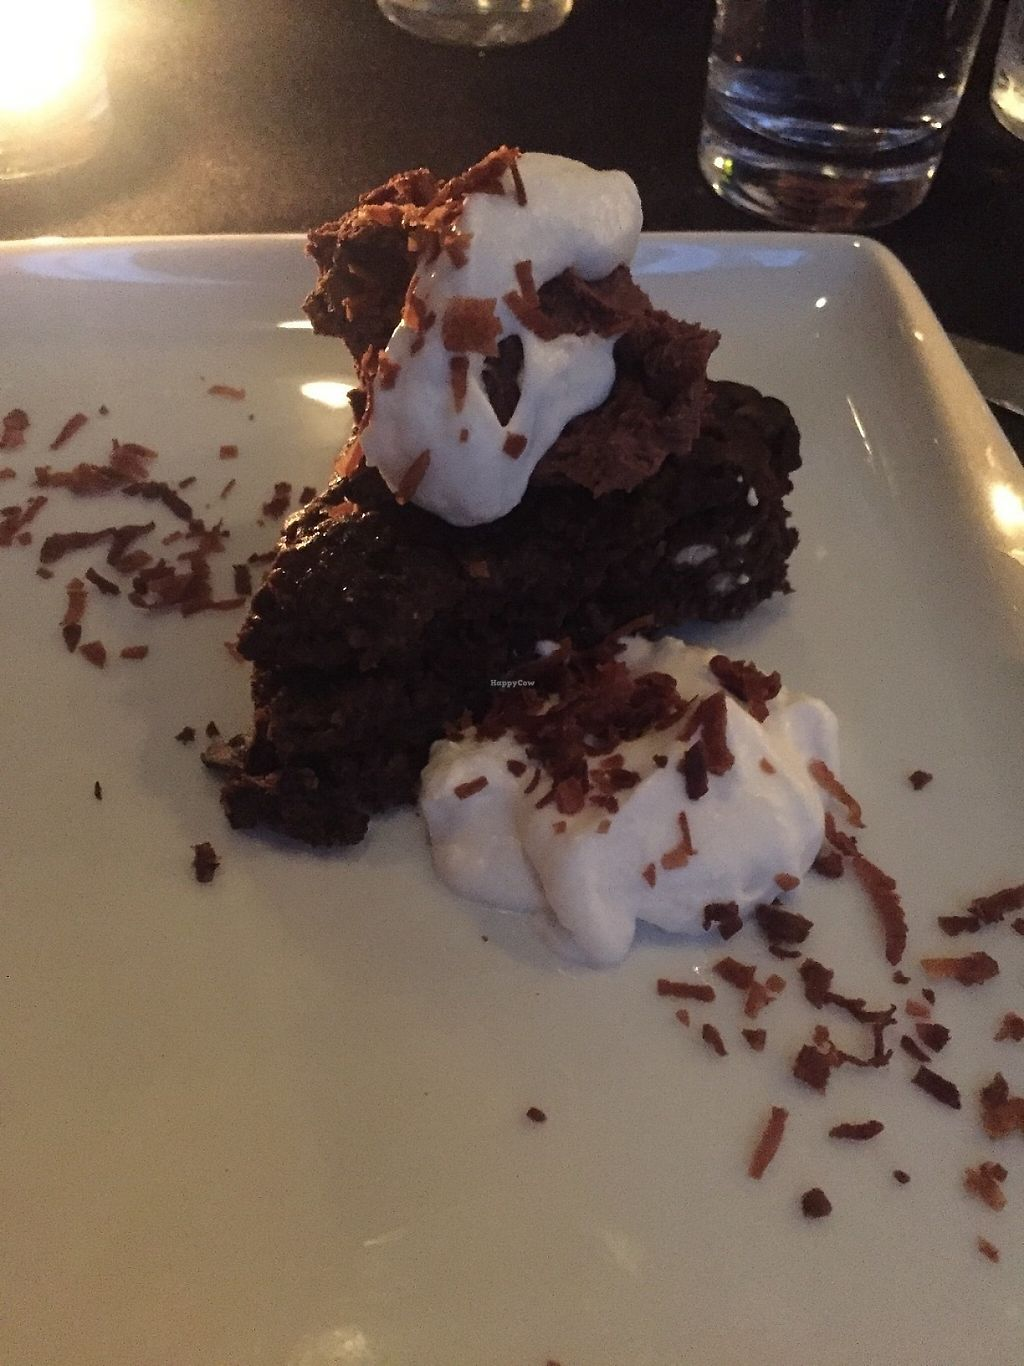 """Photo of Forged  by <a href=""""/members/profile/KaitlynnGill"""">KaitlynnGill</a> <br/>Blackbean brownie <br/> May 30, 2017  - <a href='/contact/abuse/image/92349/264182'>Report</a>"""